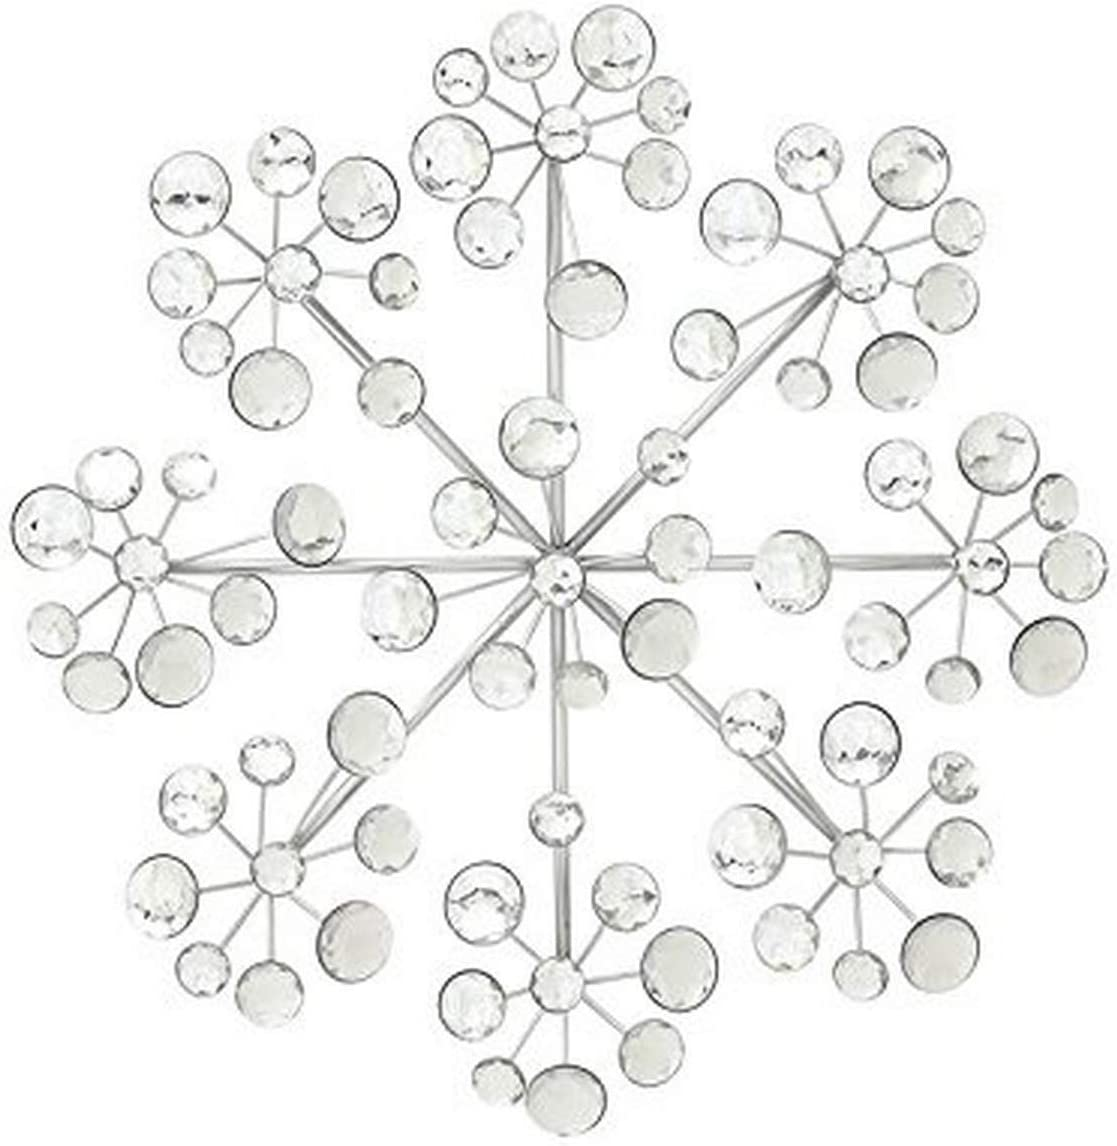 Deco 79 48650 Metal Acrylic Wall Decor, 16""